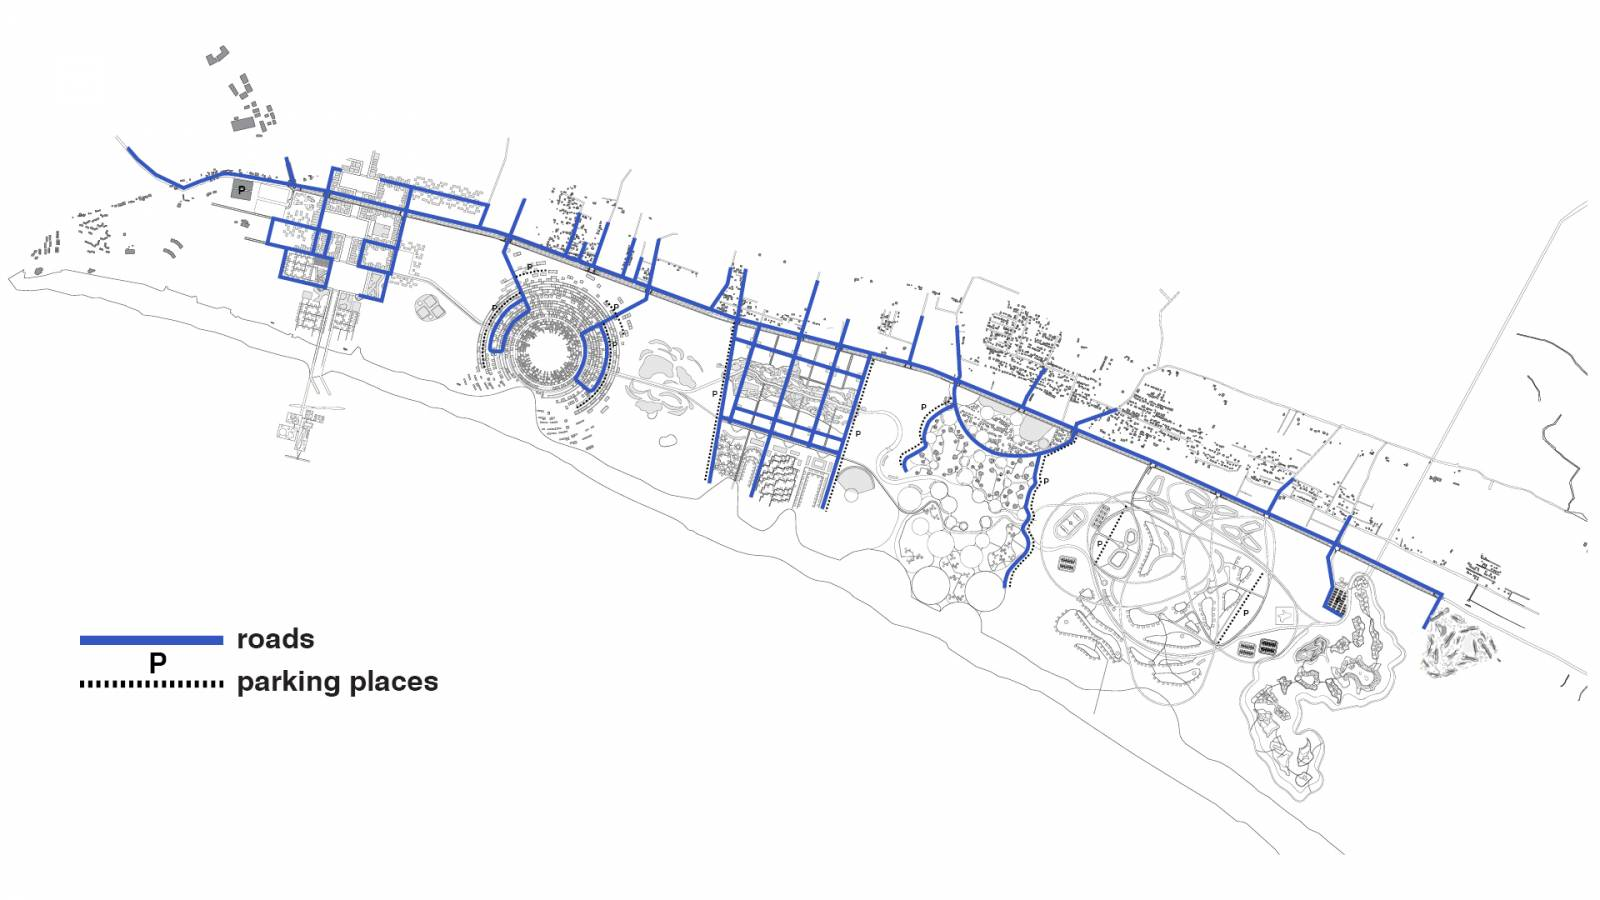 PRIVATE CAR TRAFFIC - Velika Plaza Masterplan - SPOL Architects